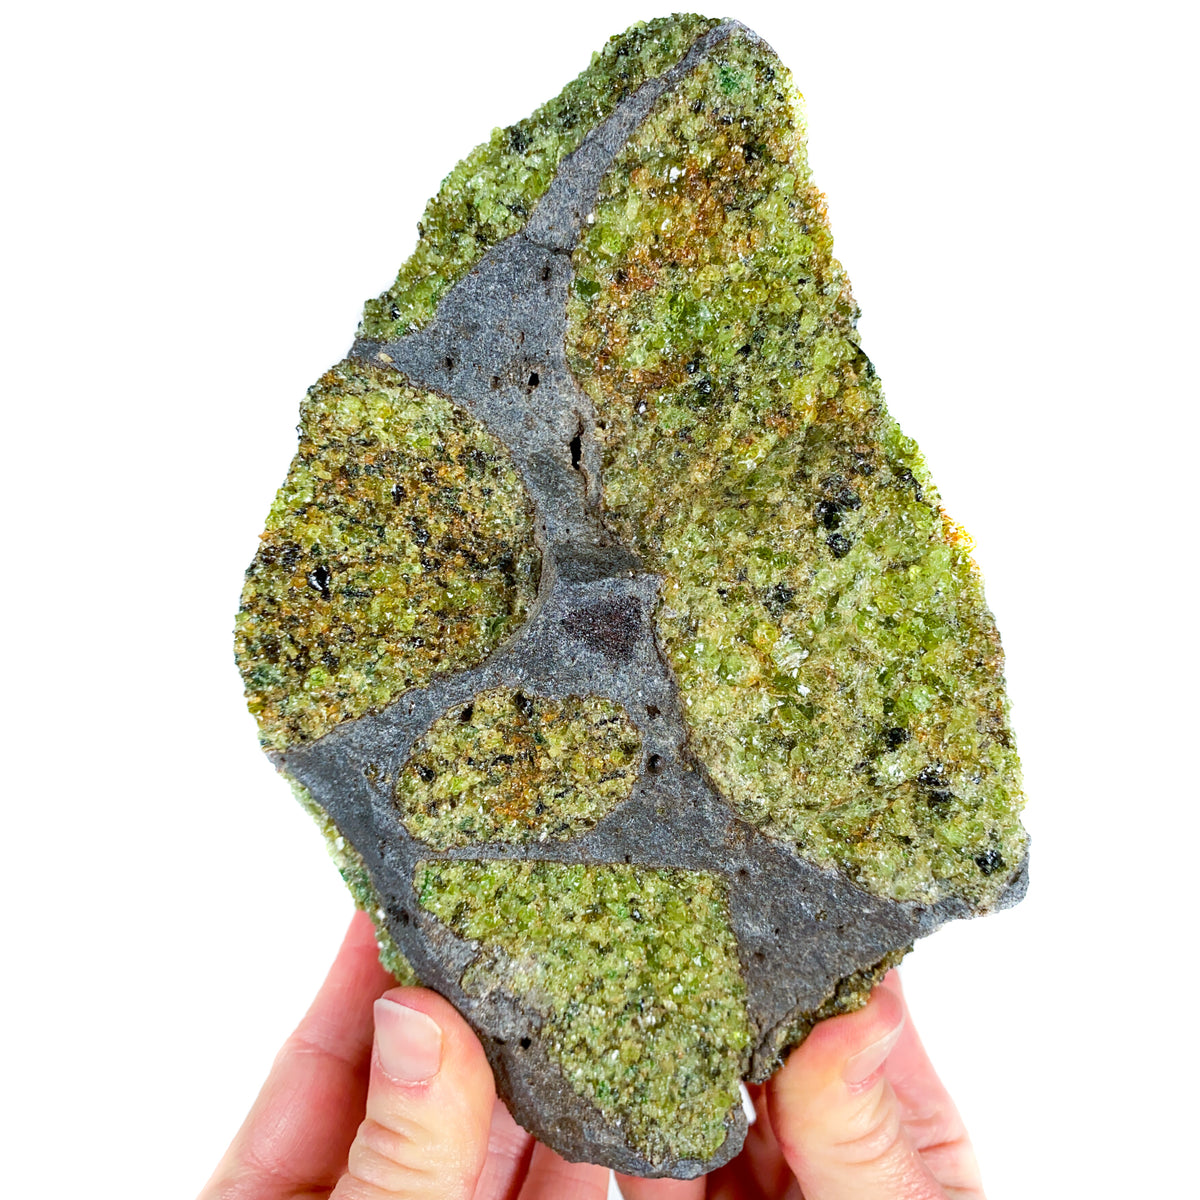 Peridot (Olivine) in Basalt, Green in Gray Rock from Arizona